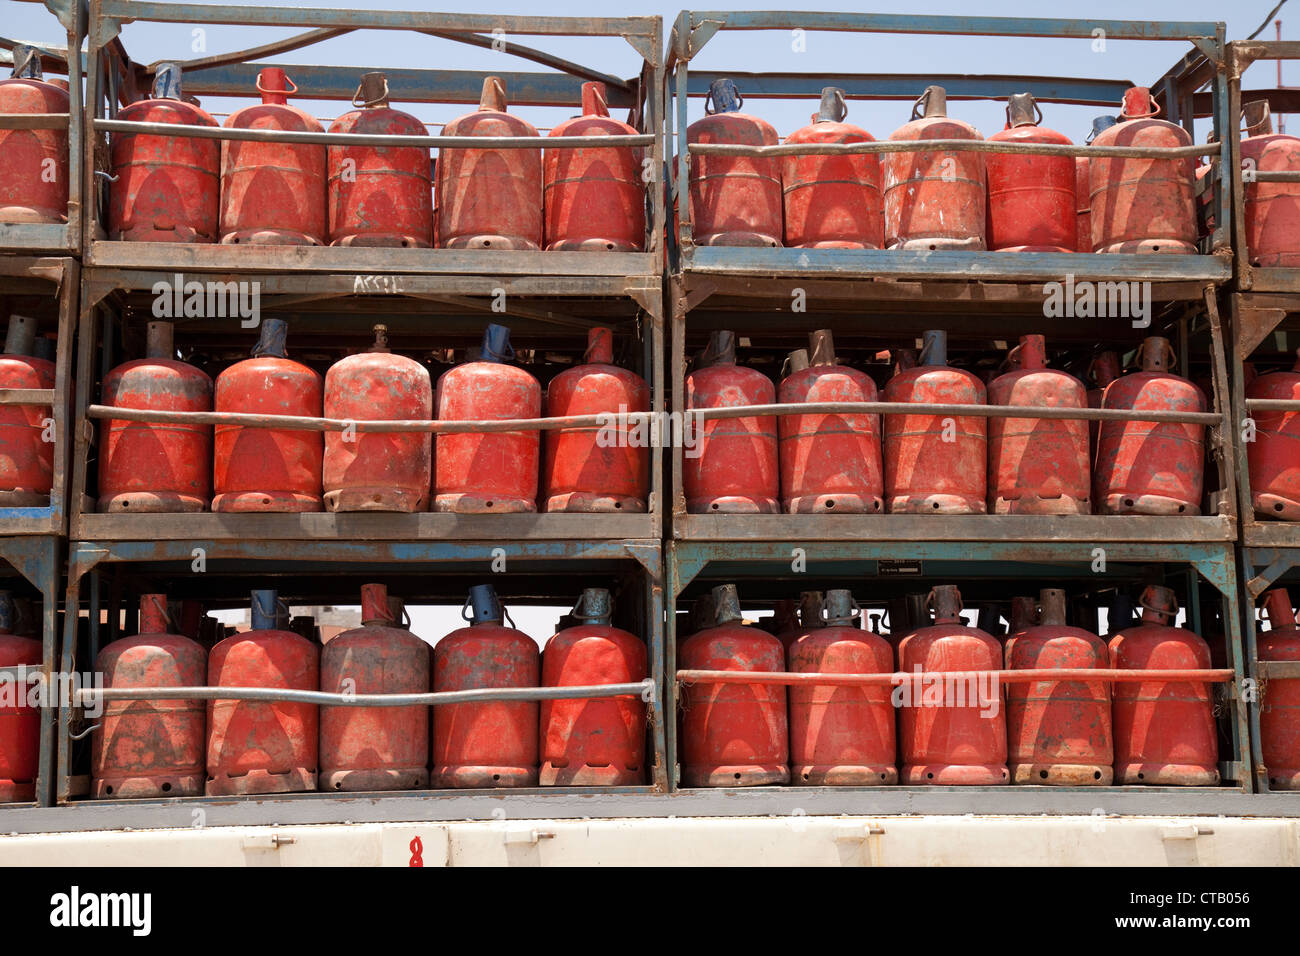 Red propane bottled gas cylinders, Morocco Africa - Stock Image